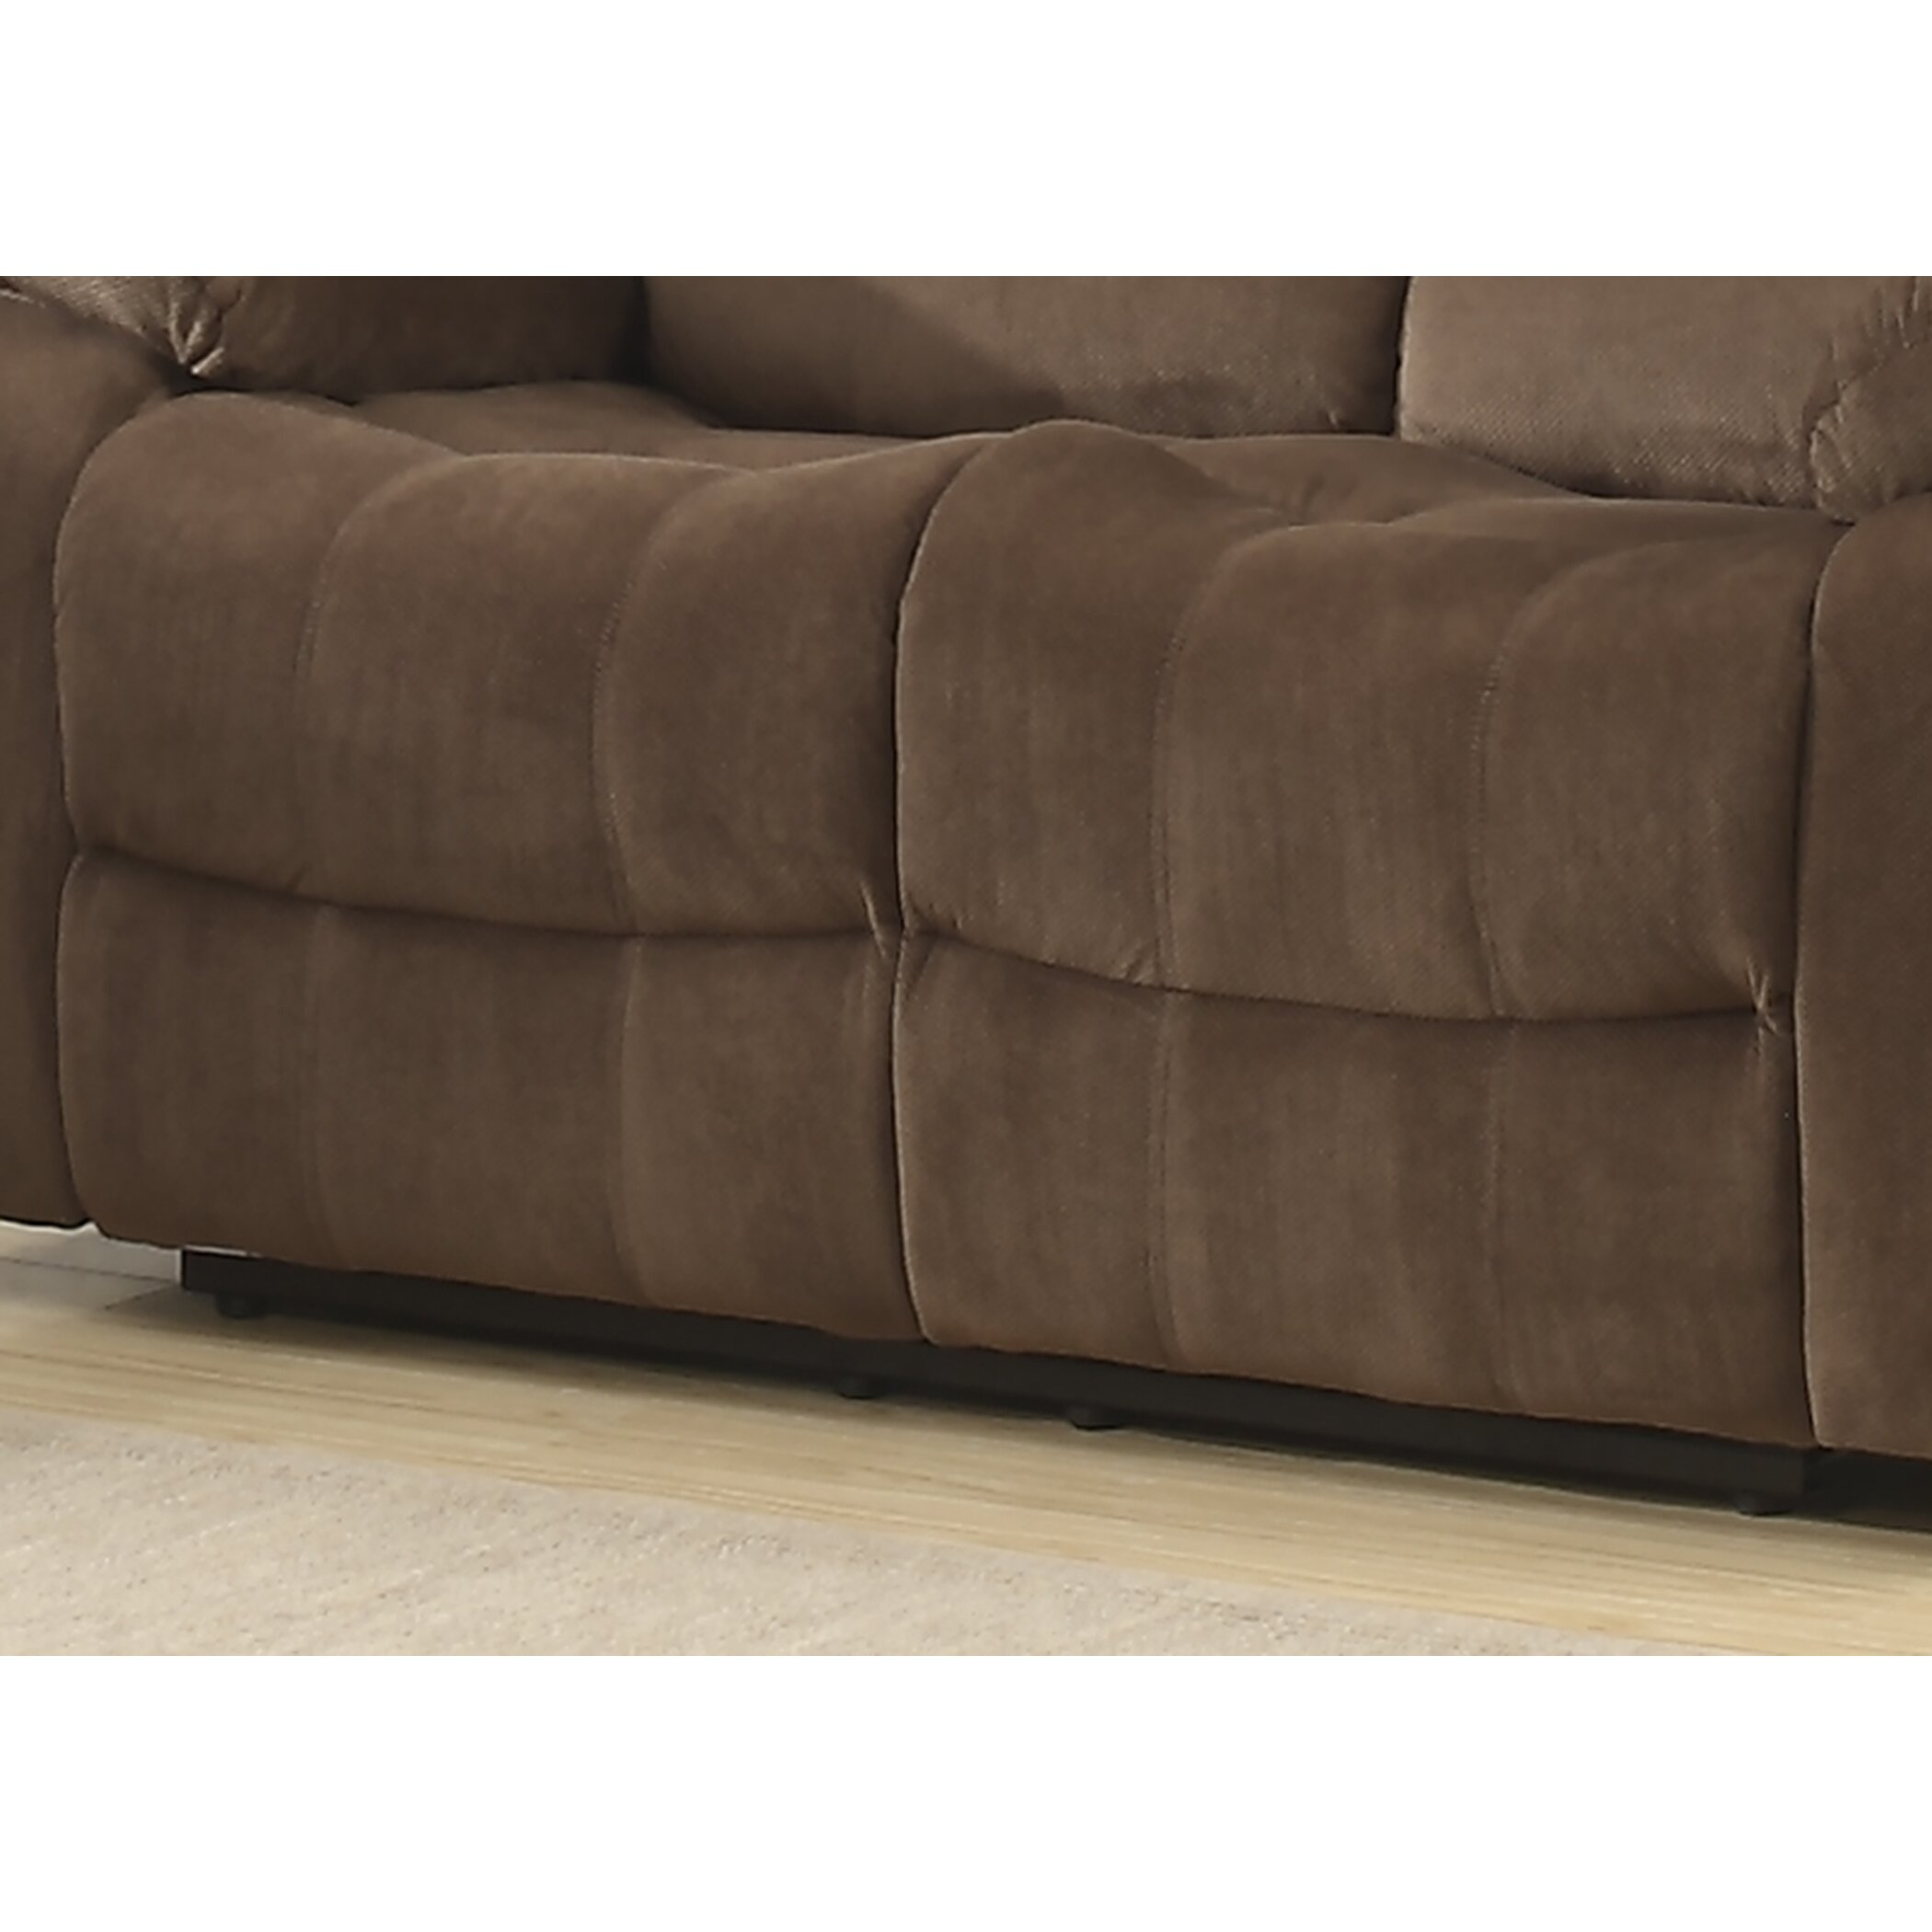 Living Room Sofa And Loveseat Sets Ac Pacific Bill Reclining Living Room Sofa And Loveseat Set